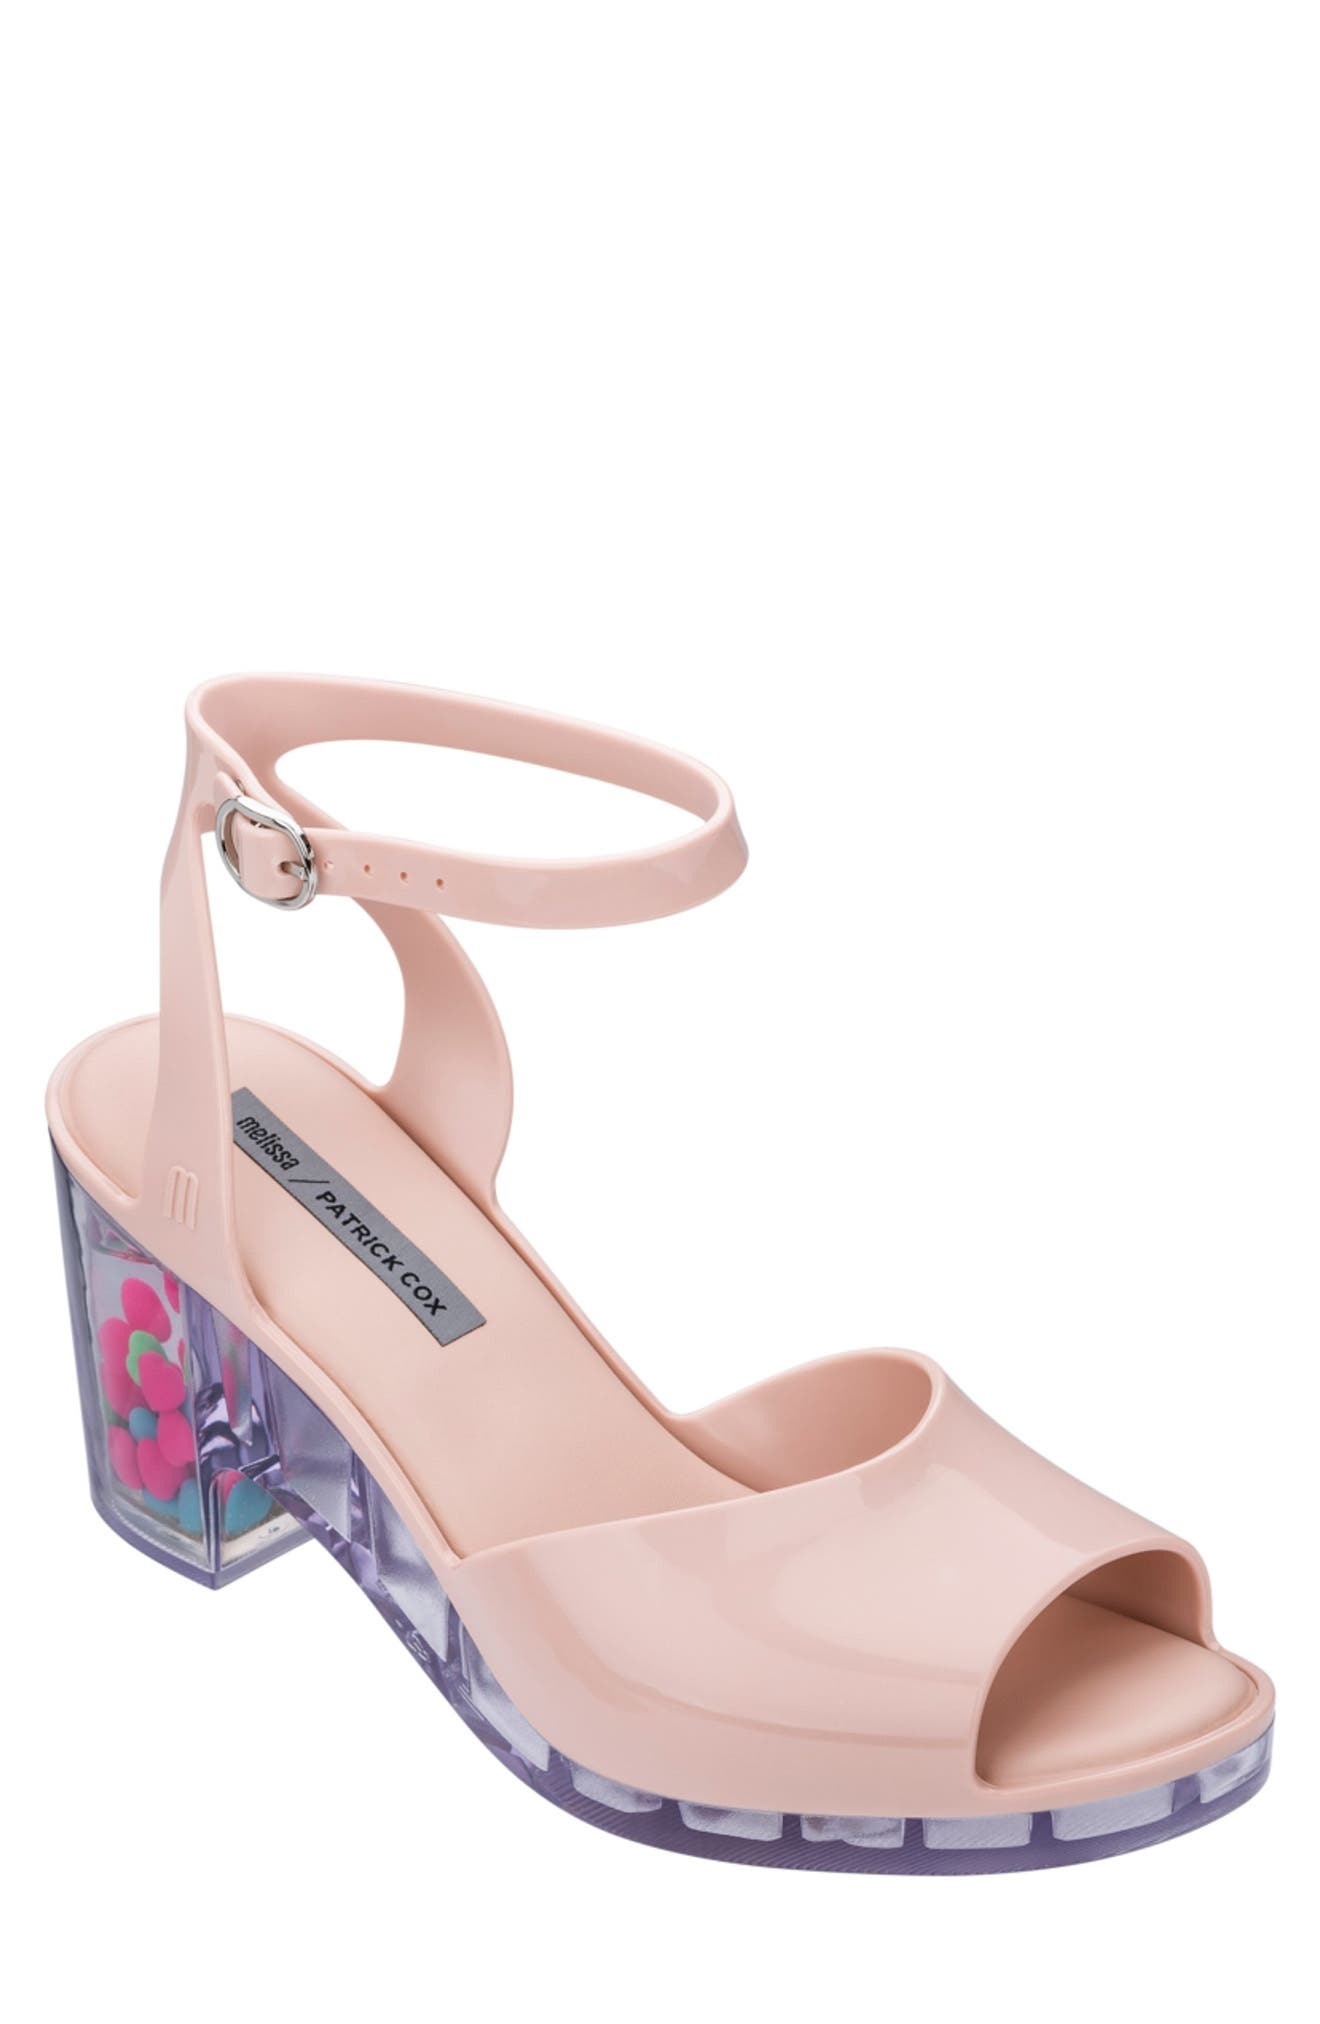 80s Shoes, Sneakers, Jelly flats  1980s Shoes MELISSA x Patrick Cox Heart Heel Jelly Sandal Size 5 in Light Pink at Nordstrom Rack $59.97 AT vintagedancer.com